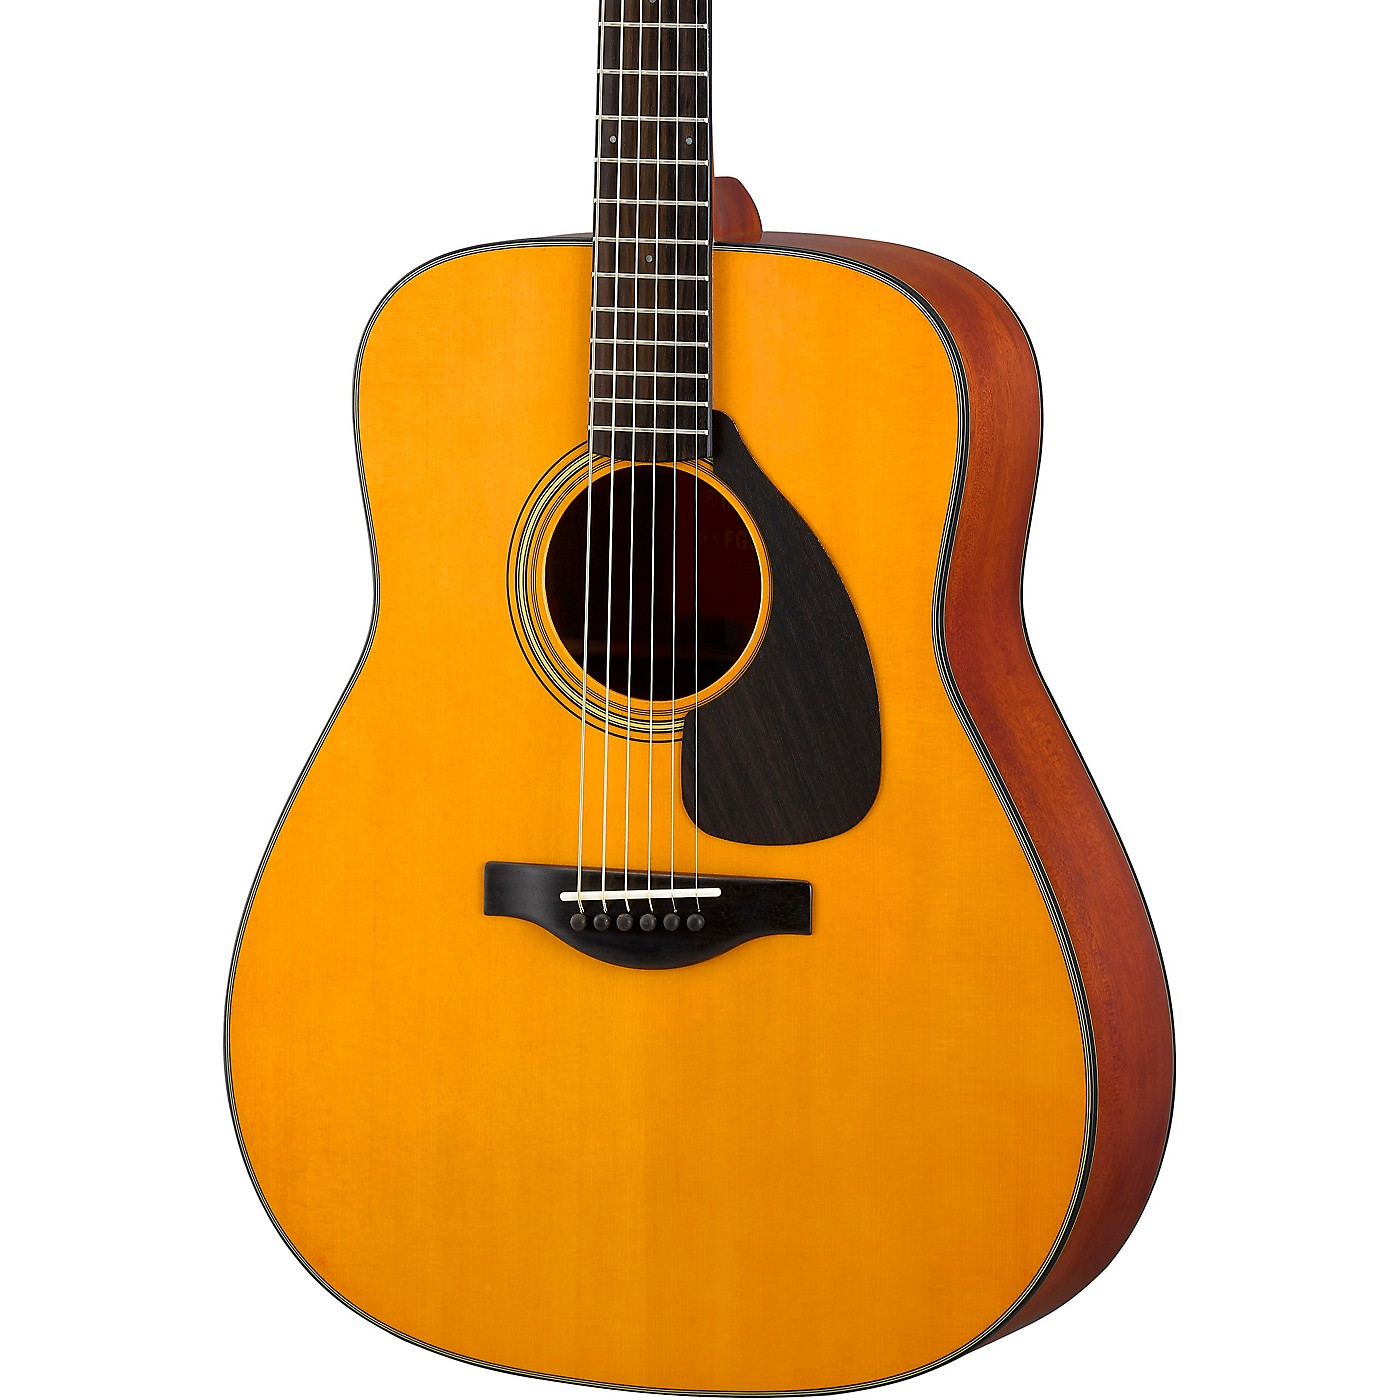 Yamaha FG5 Red Label Dreadnought Acoustic Guitar thumbnail